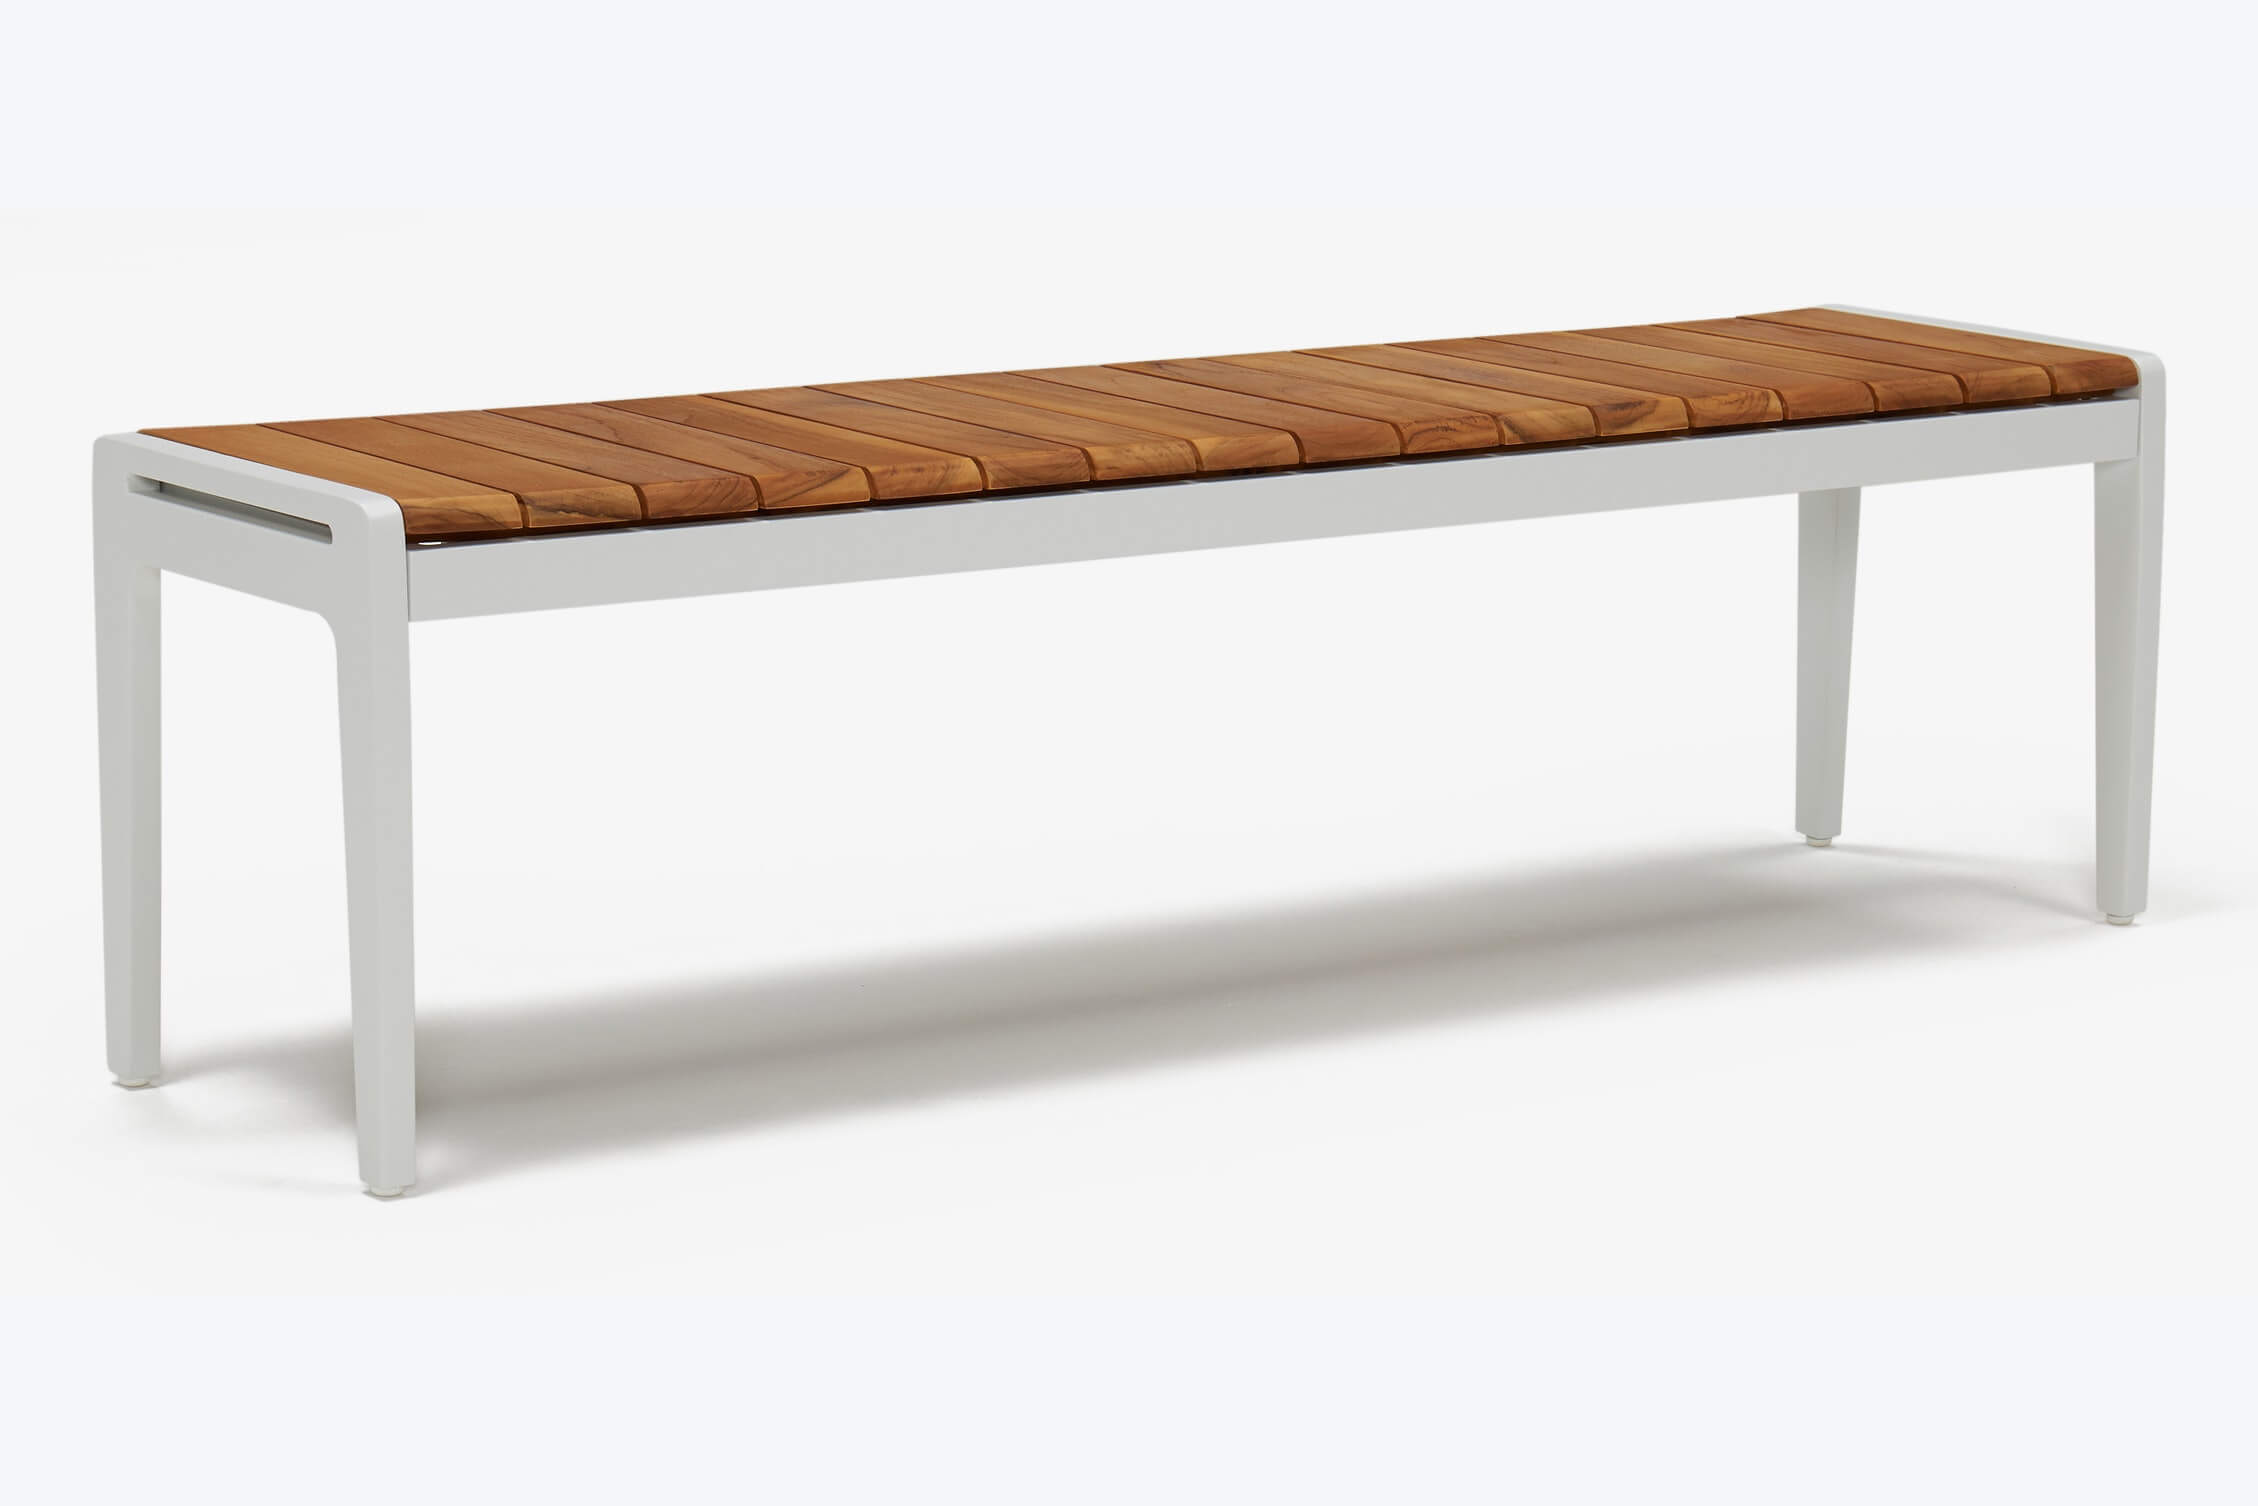 White outdoor bench with teak wood slatted top